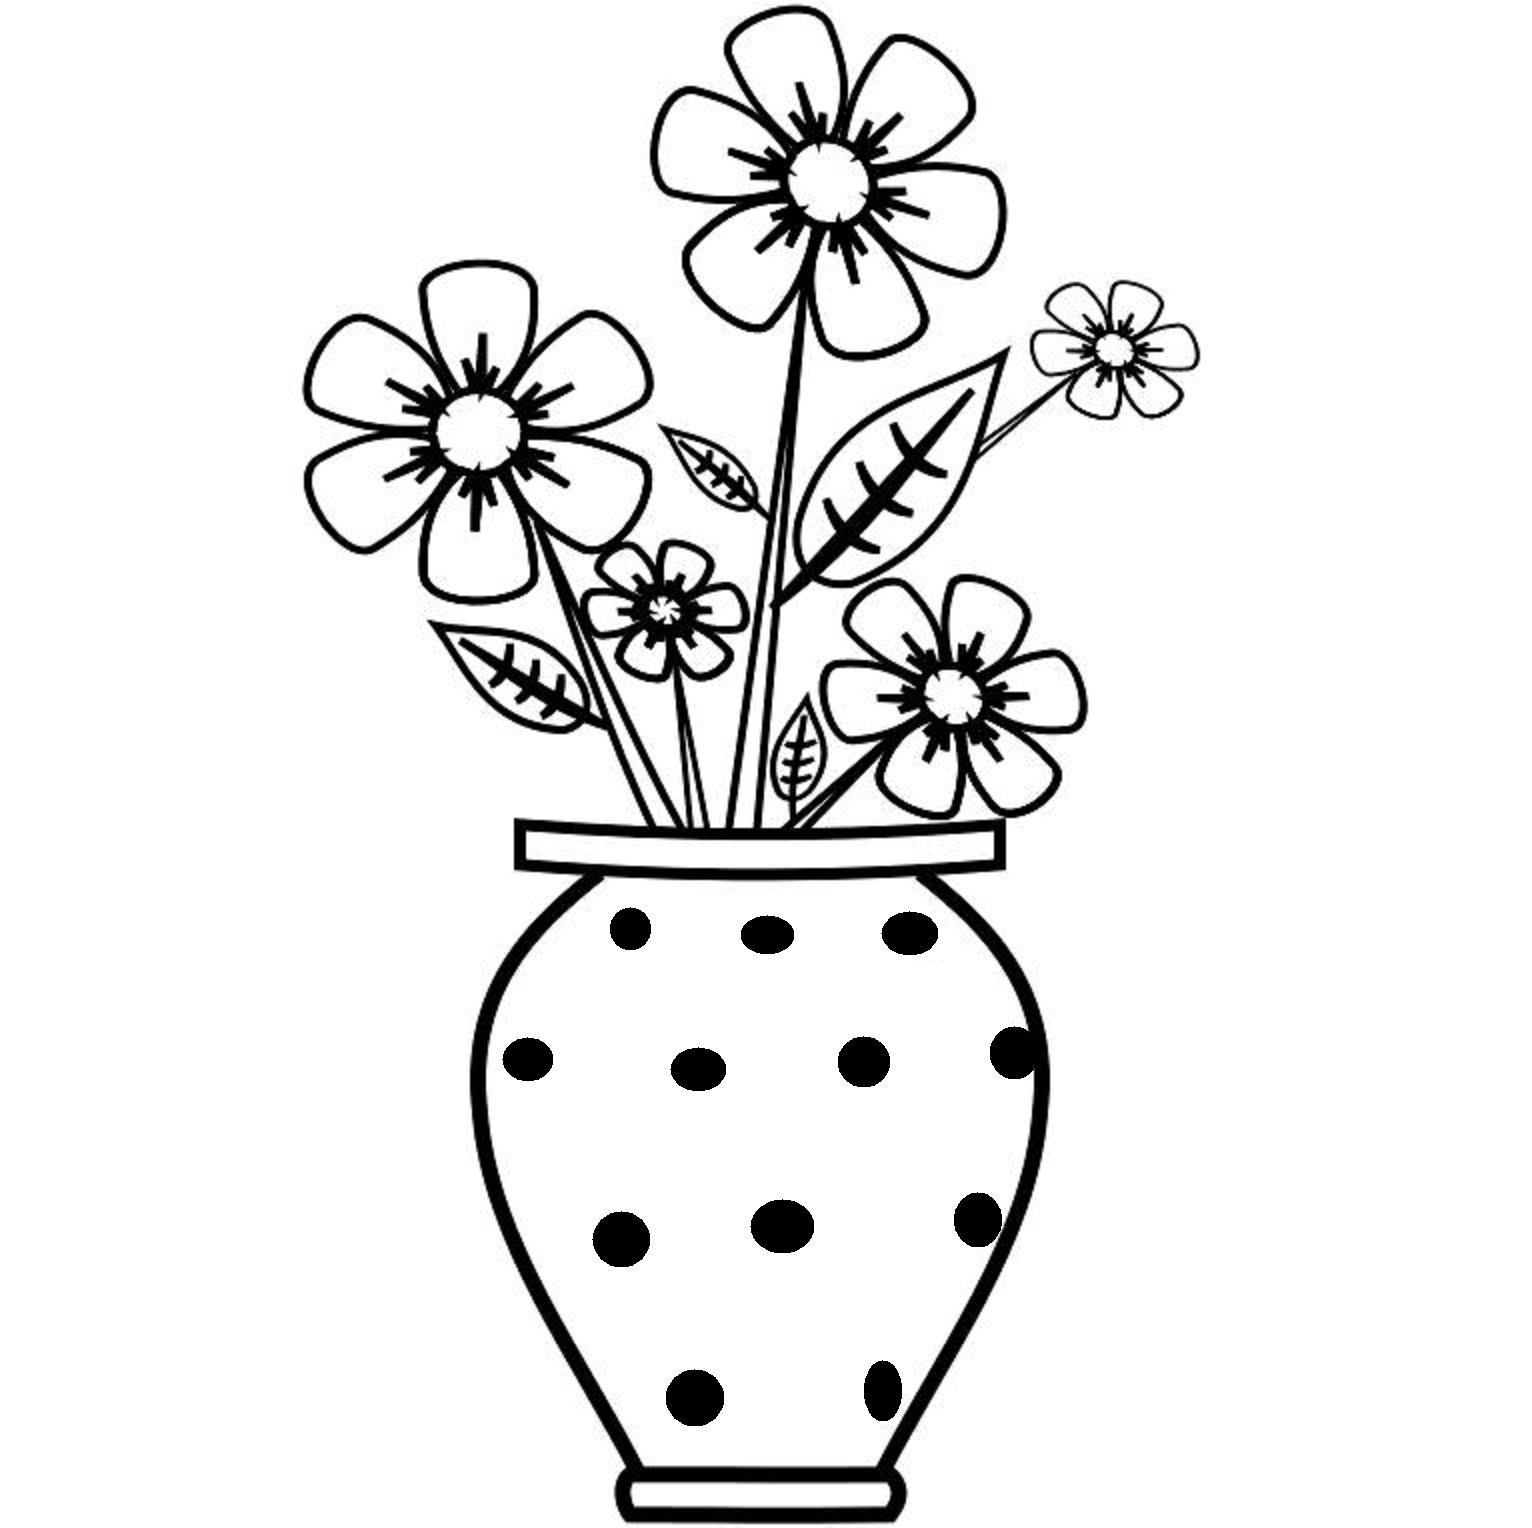 1532x1528 Vase Flower Vase With Flowers Drawings Drawing Of Flower Vase